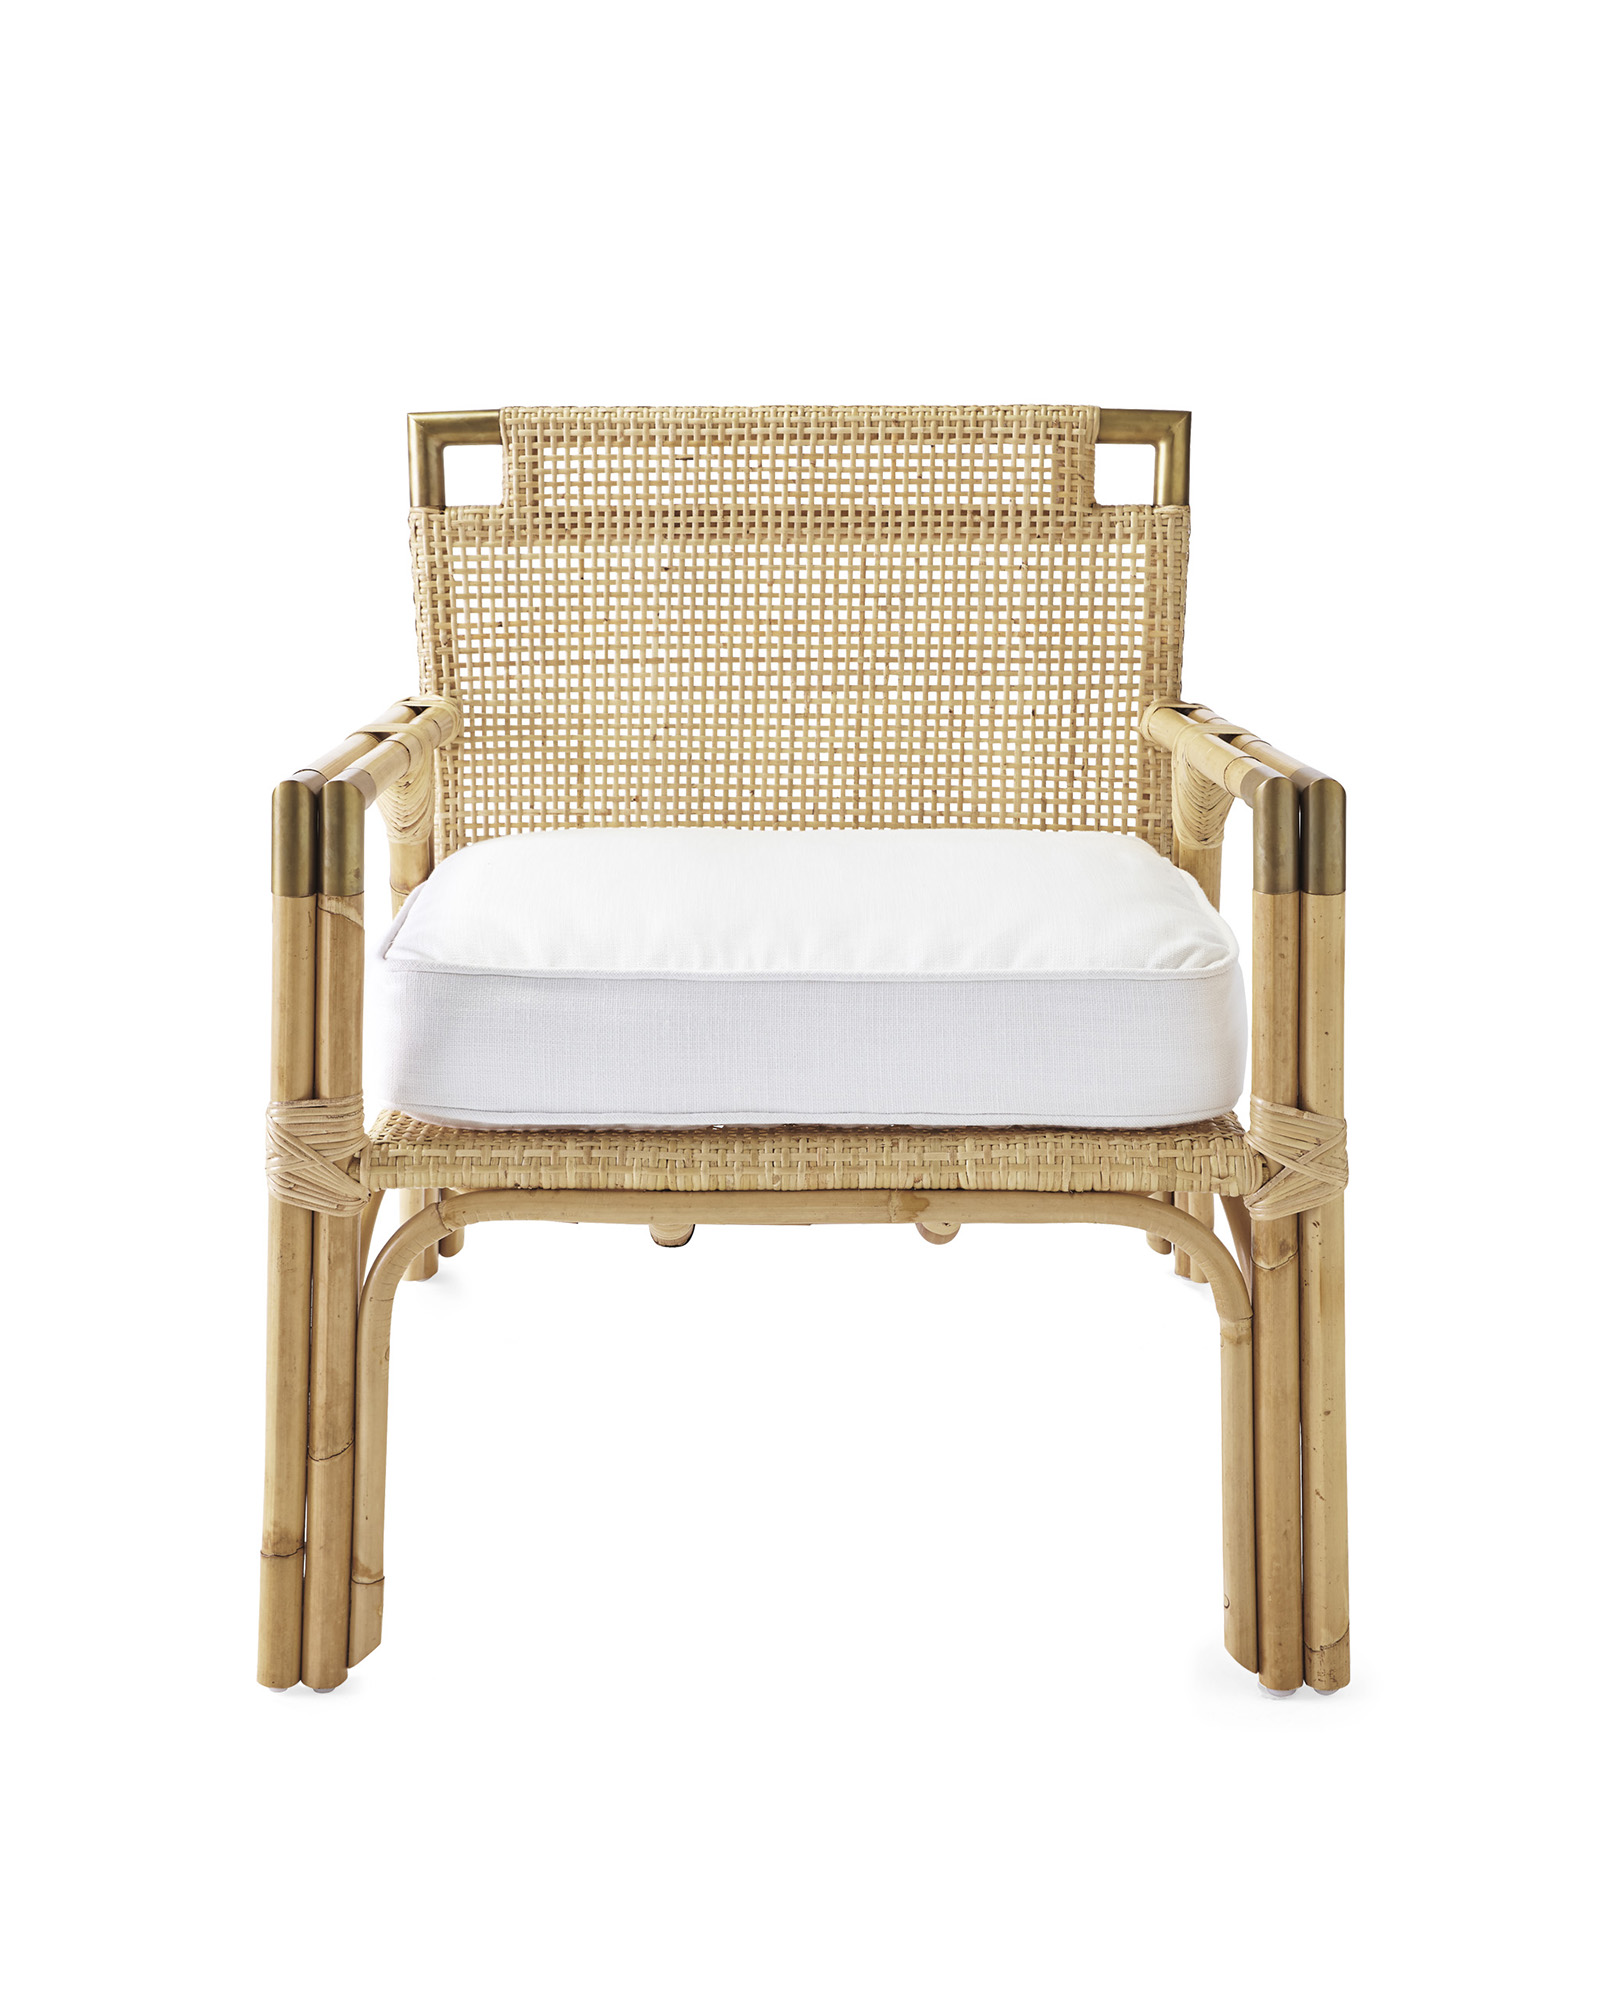 Furn_Rattan_Brass_Arm_Chair_Mattituck_Perennials_Basketweave_White_Front_MV_Crop_SH.jpg